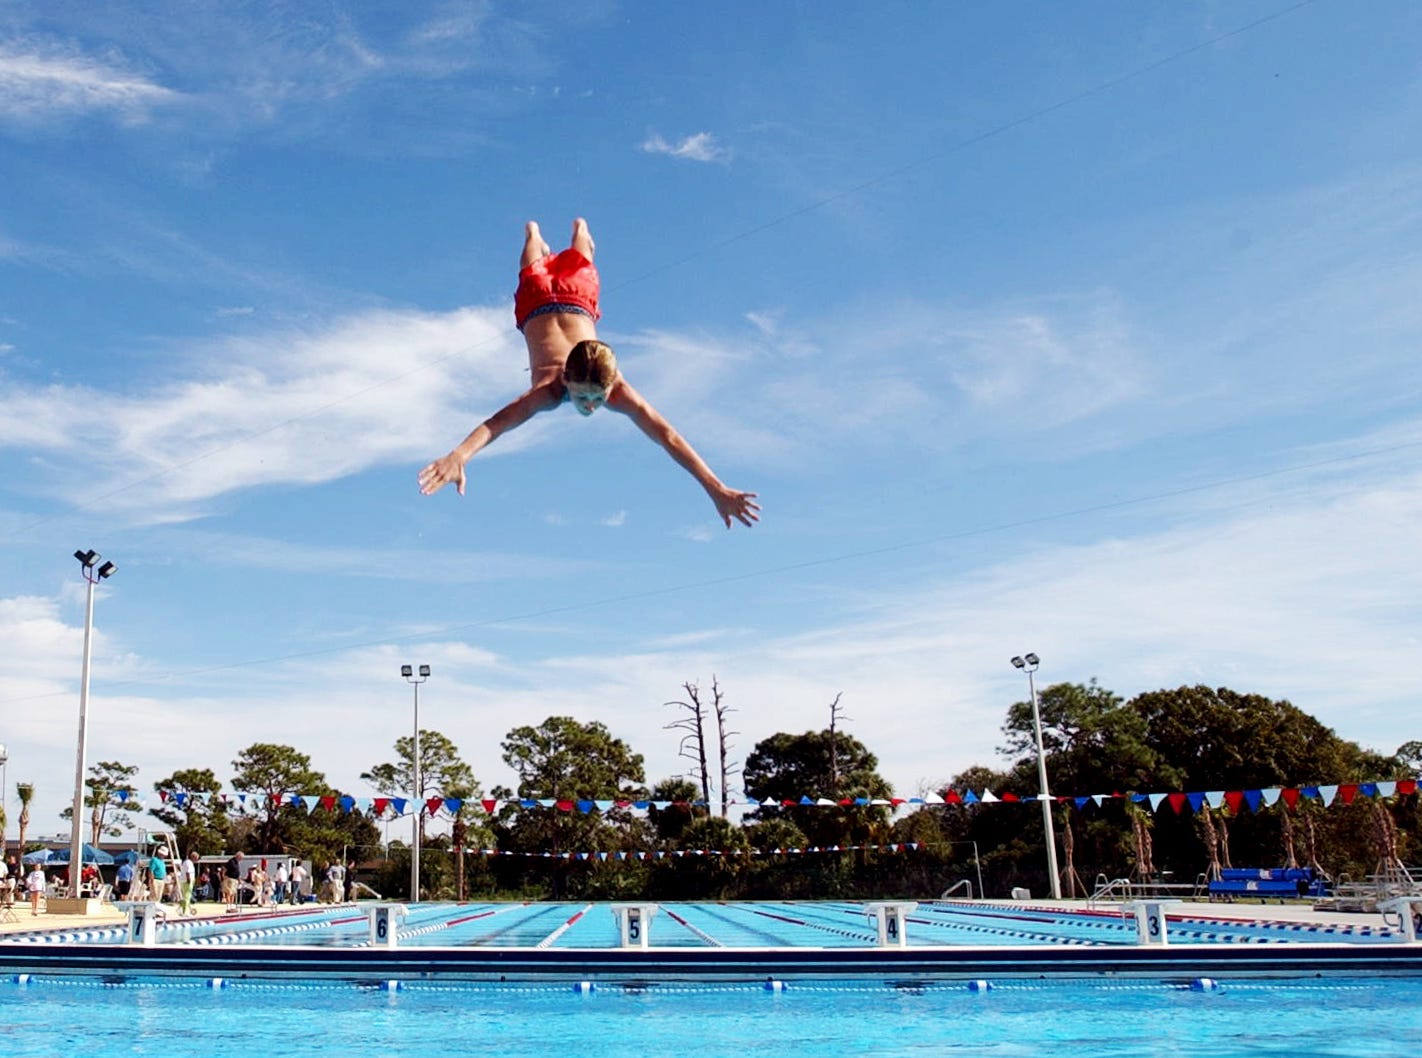 November 30, 2002 - Tyler Saghy, 13, a seventh-grader at Sebastian River Middle School, helps inaugurate the new pool in North County Regional Park with a back flip from the high diving board. The Olympic-size pool is 16,314 square feet and holds 930,000 gallons of water. During construction, the Olympic pool was destroyed earlier in the year by storms and had to be rebuilt.